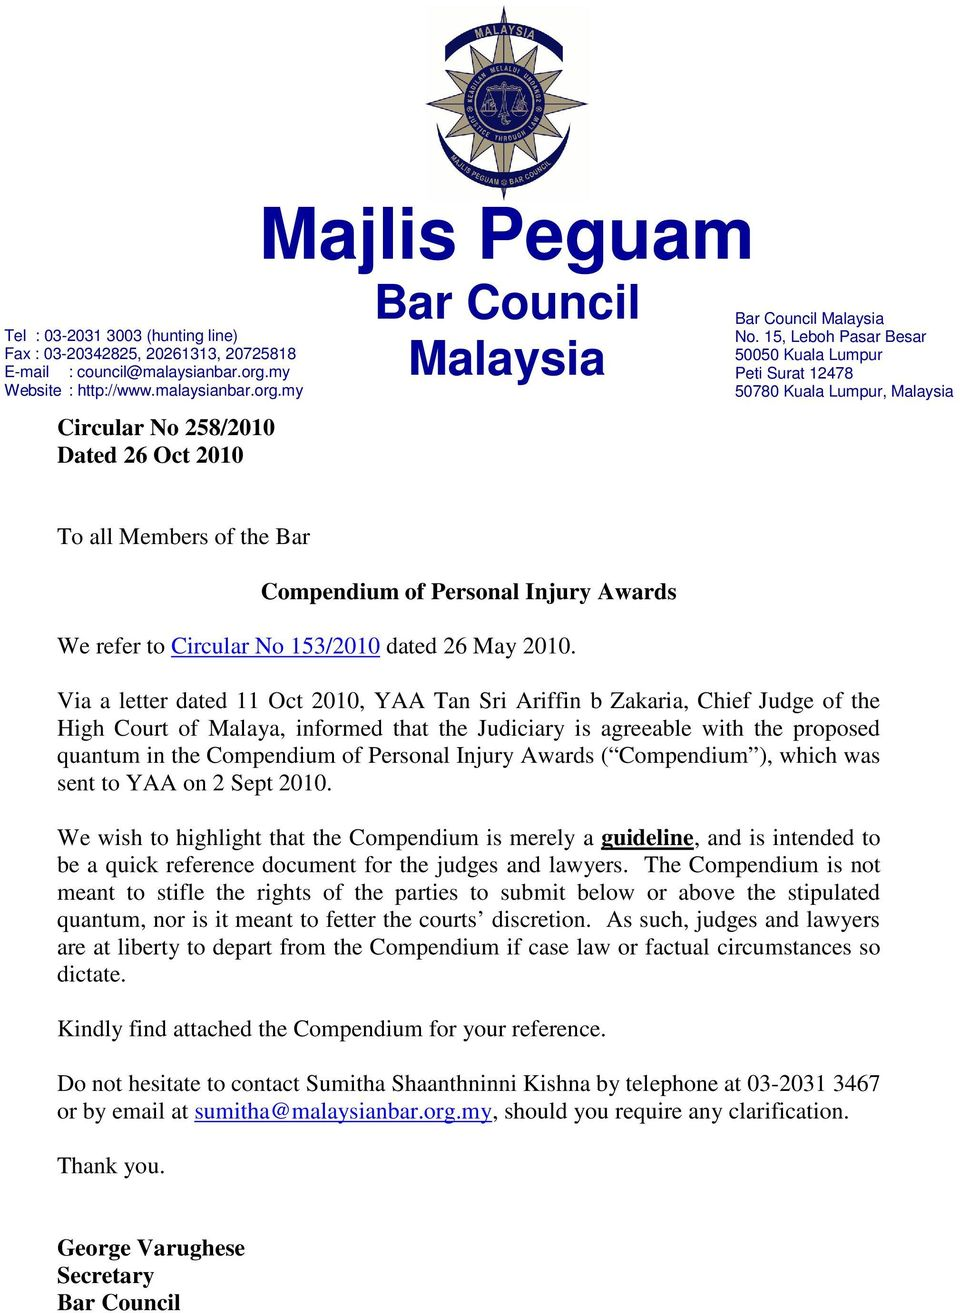 15, Leboh Pasar Besar 50050 Kuala Lumpur Peti Surat 12478 50780 Kuala Lumpur, Malaysia To all Members of the Bar Compendium of Personal Injury Awards We refer to Circular No 153/2010 dated 26 May